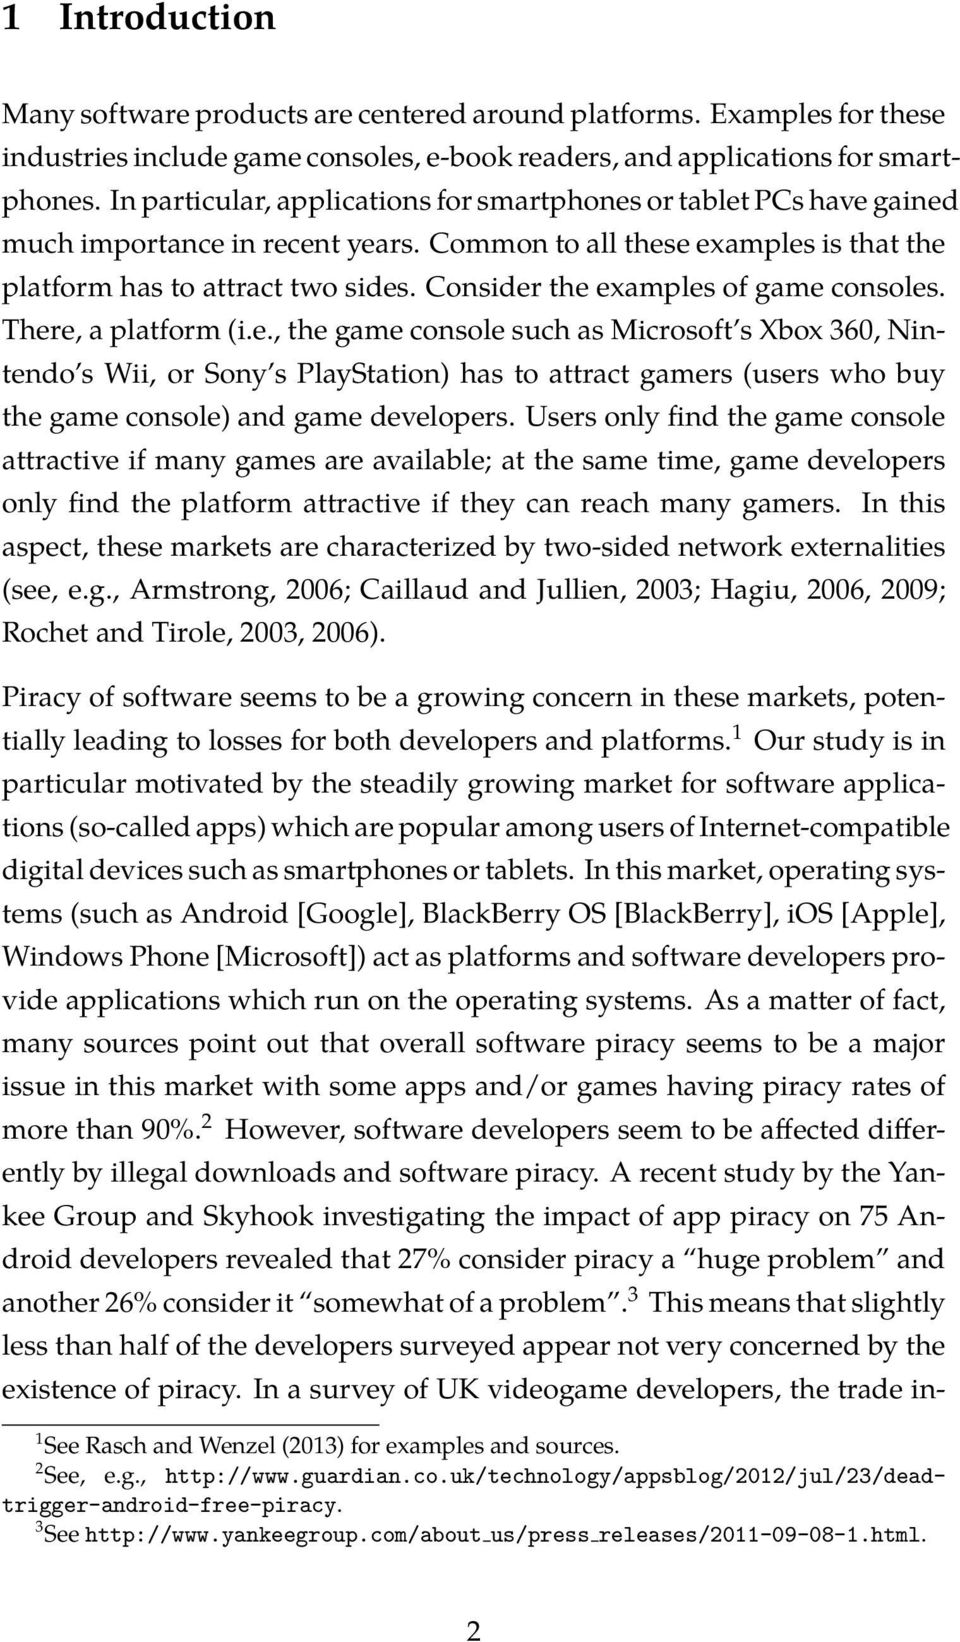 Consider the examples of game consoles. There, a platform (i.e., the game console such as Microsoft s Xbox 360, Nintendo s Wii, or Sony s PlayStation) has to attract gamers (users who buy the game console) and game developers.